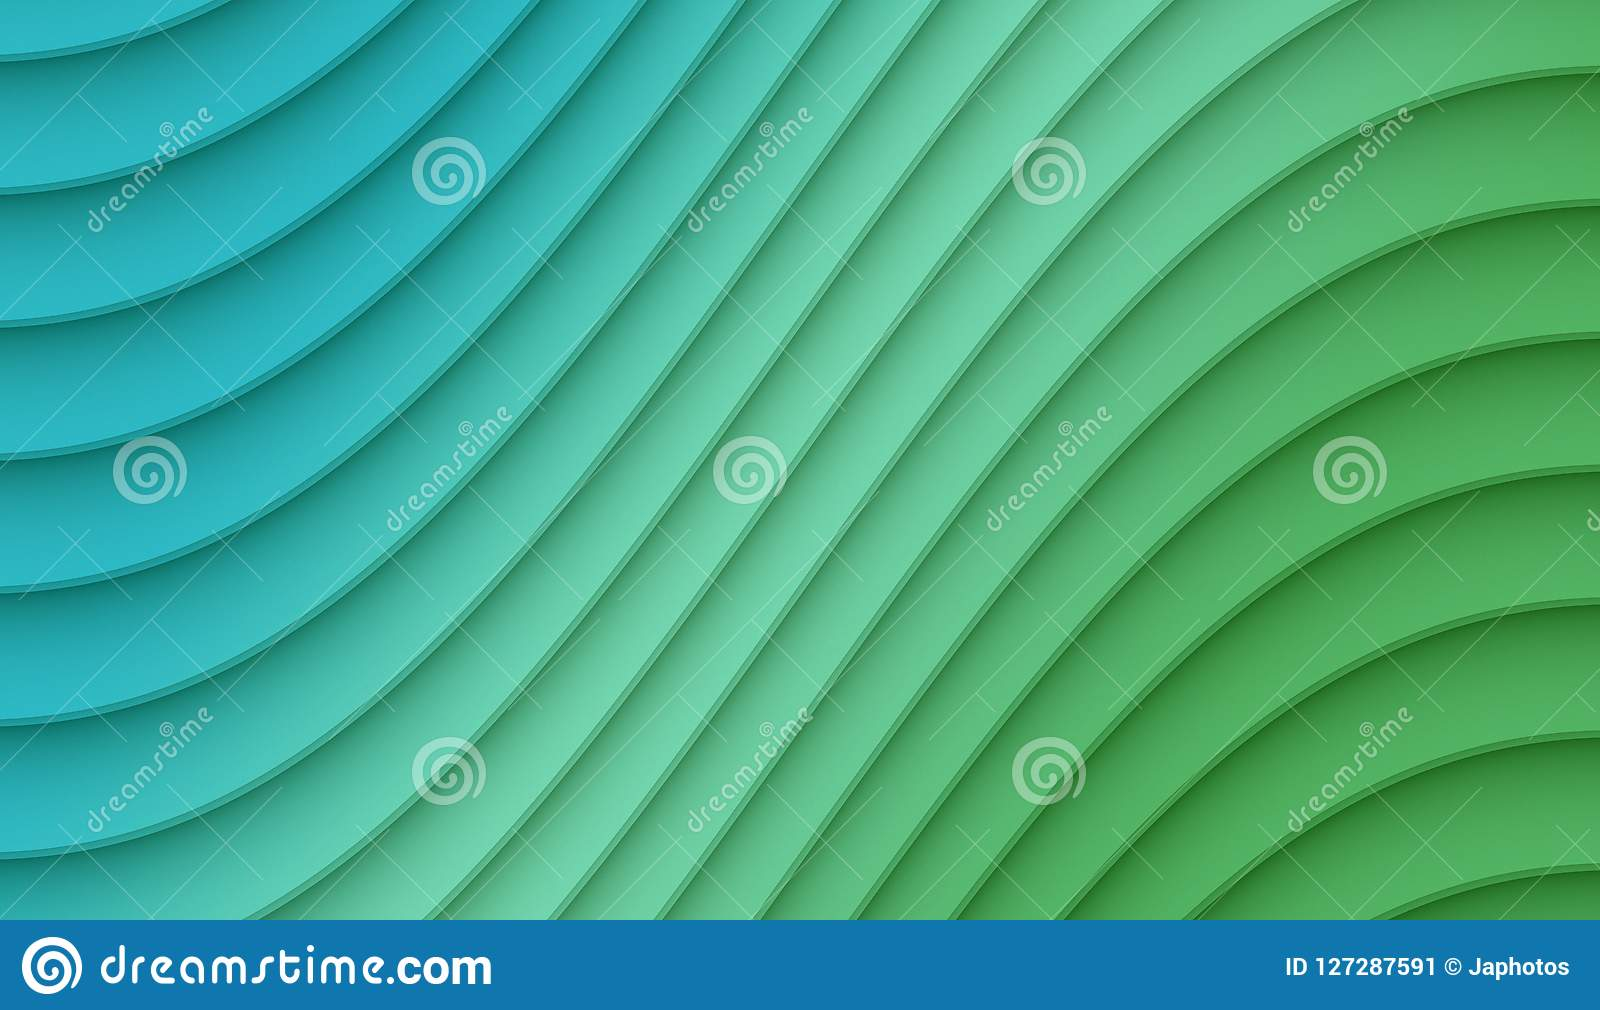 Fresh Blue And Green Smooth Diagonal Curved Lines Abstract